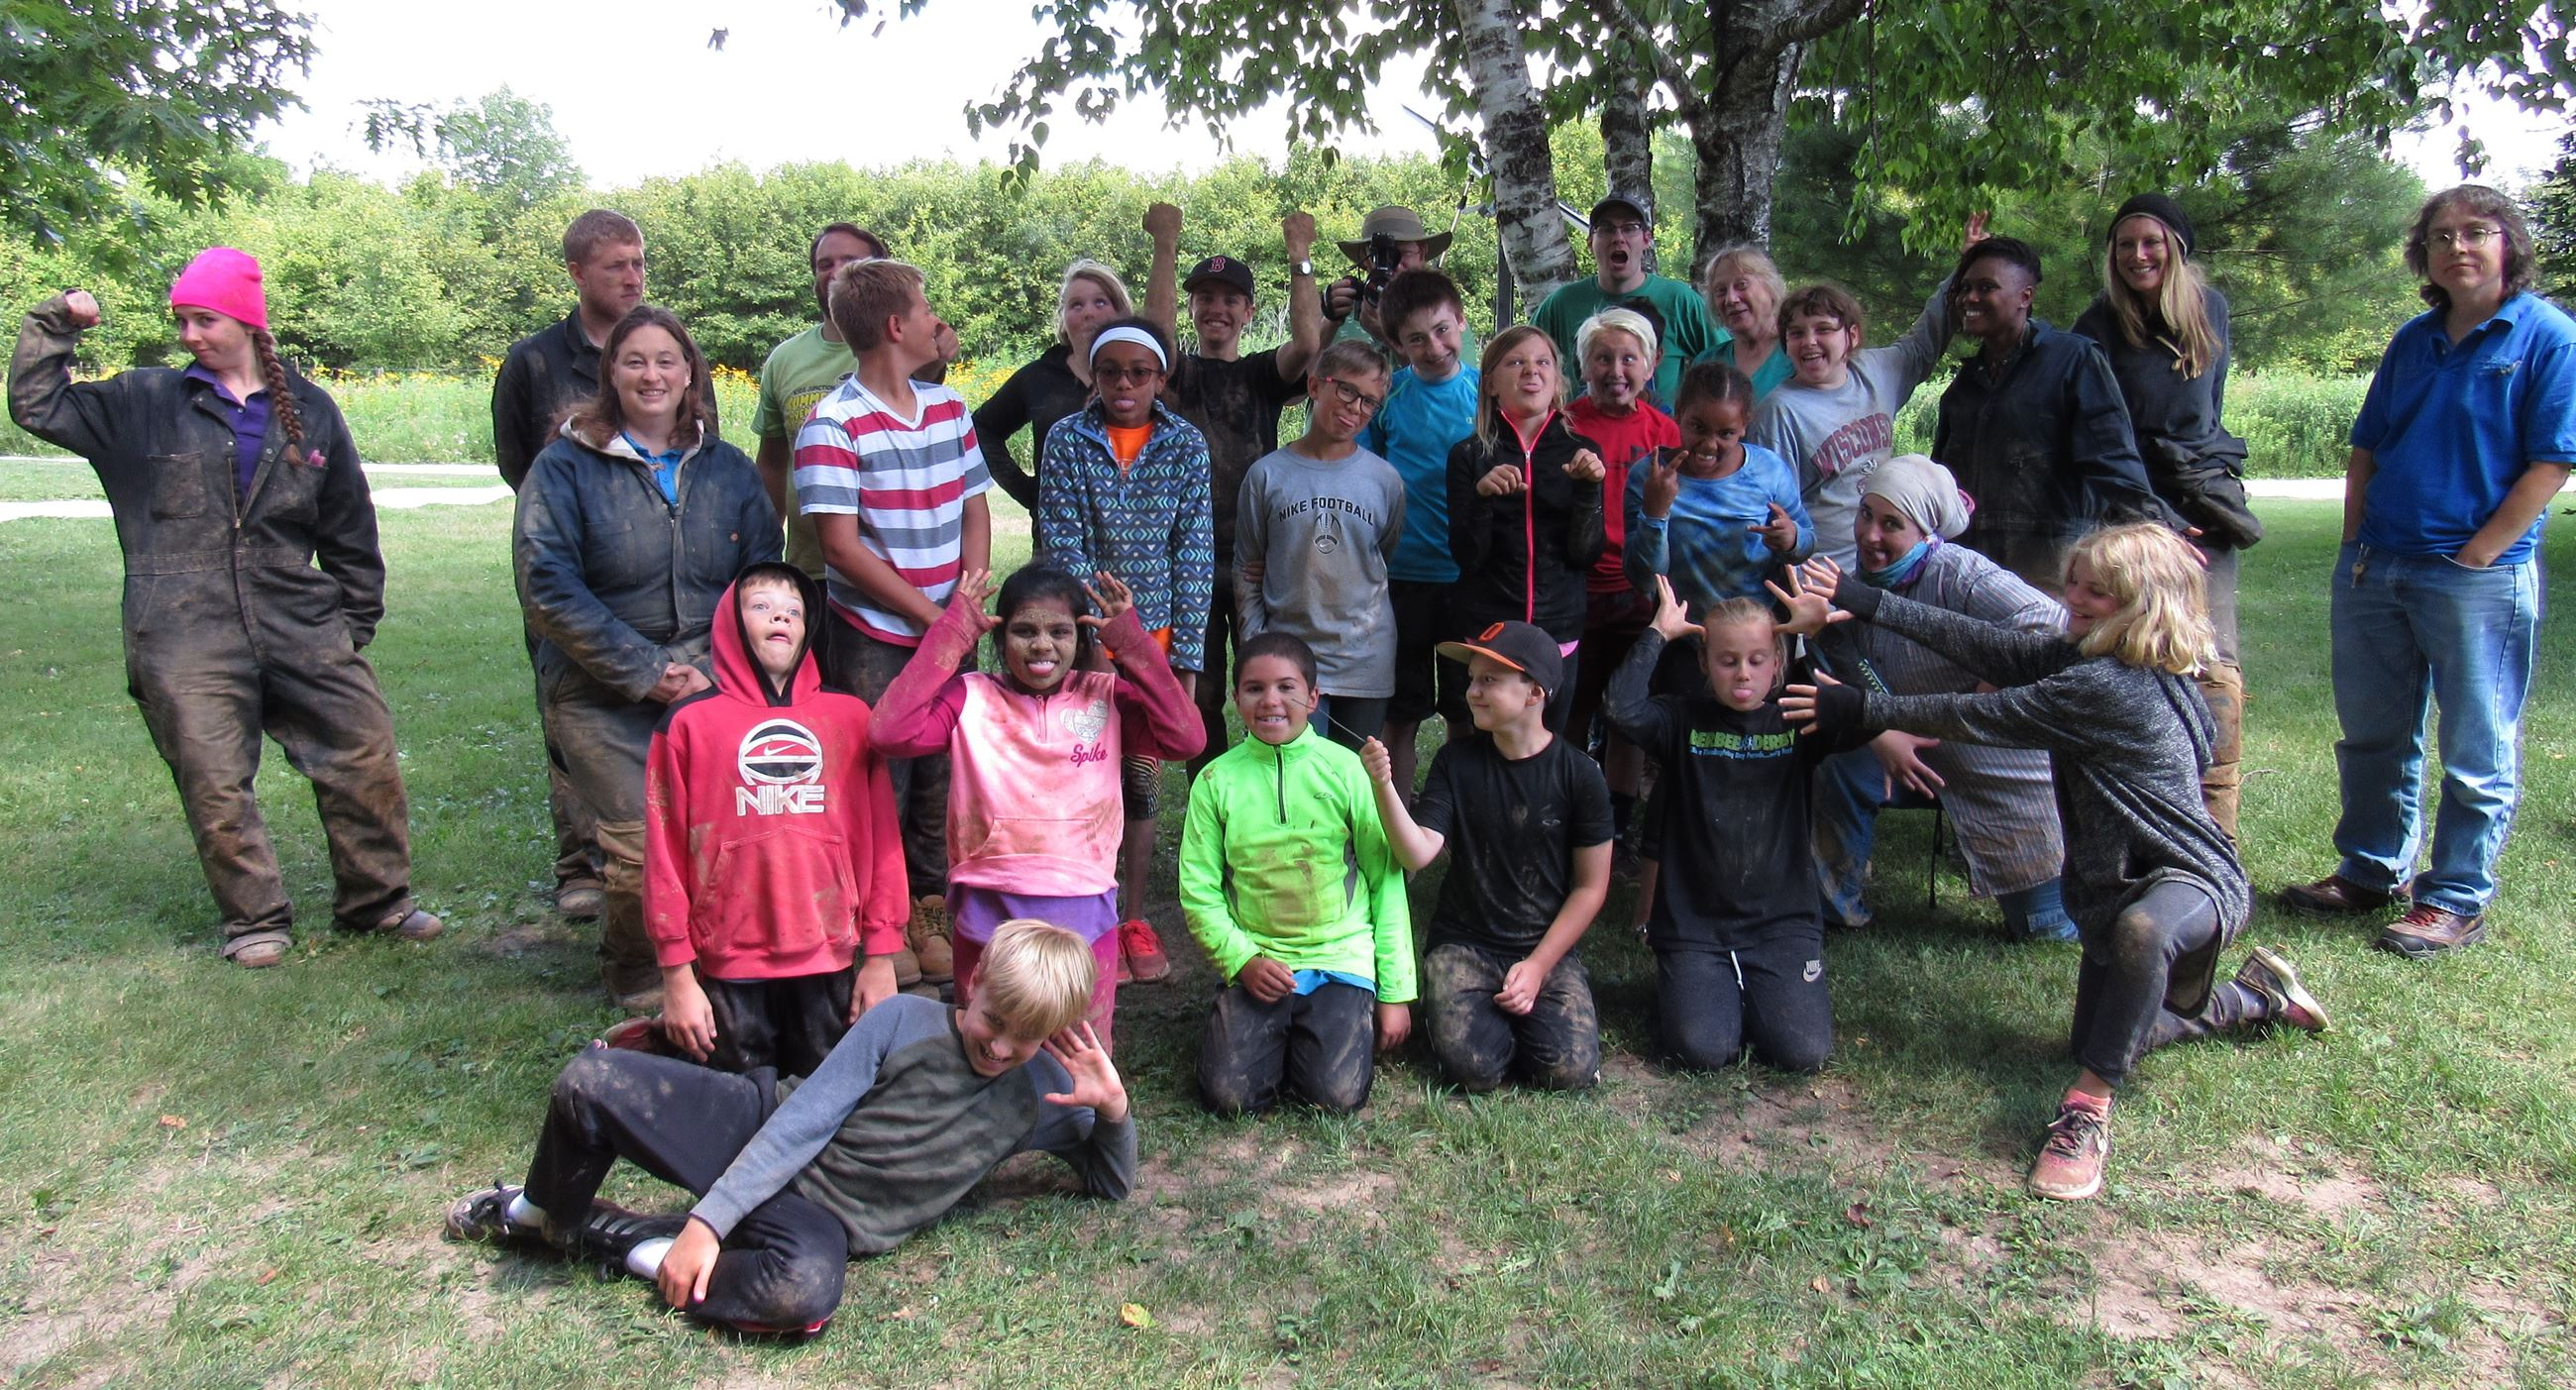 A group of muddy kids pulling funny faces. The kids just got back from caving.